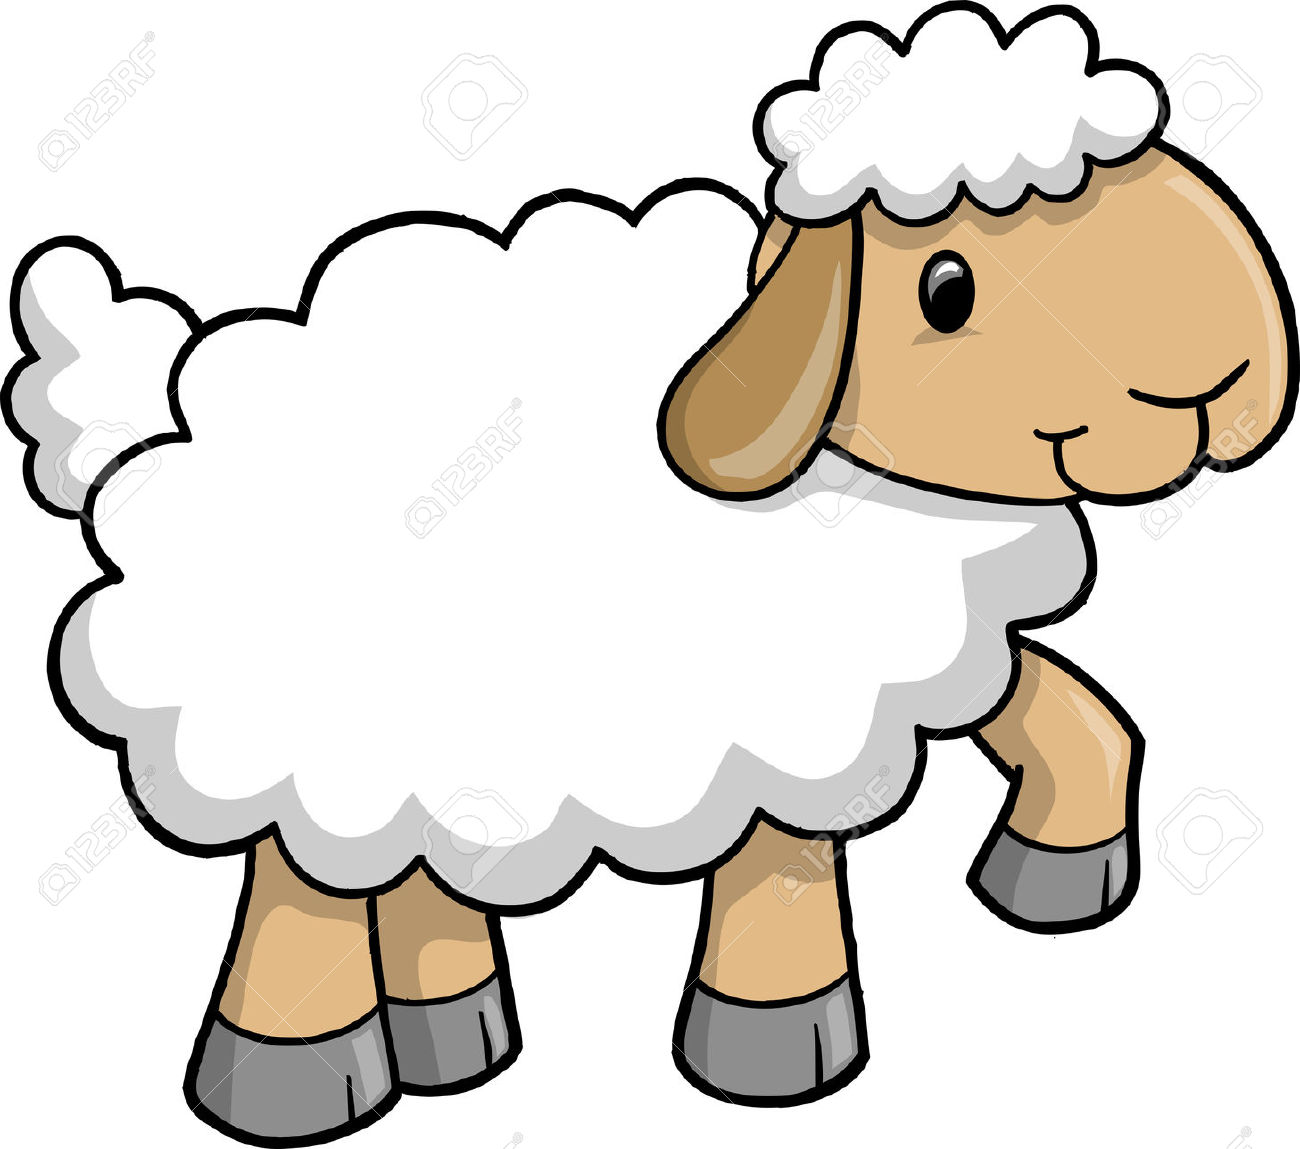 Sheep clipart Sheep images Clip Sheep com